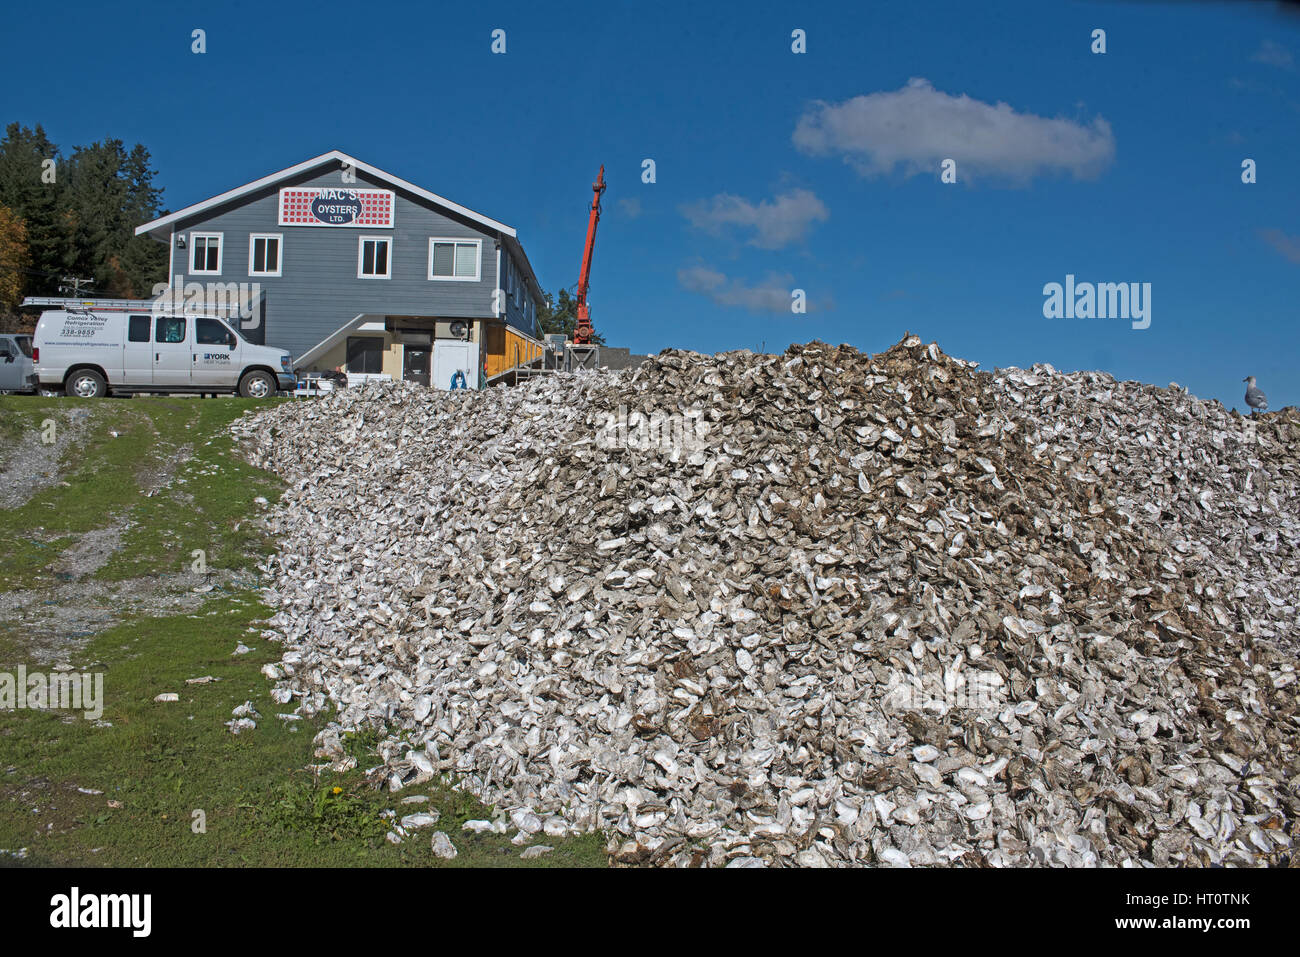 Canadian oysters from the Fanny Bay area of Vancouver Island in British Columbia Canada - Stock Image